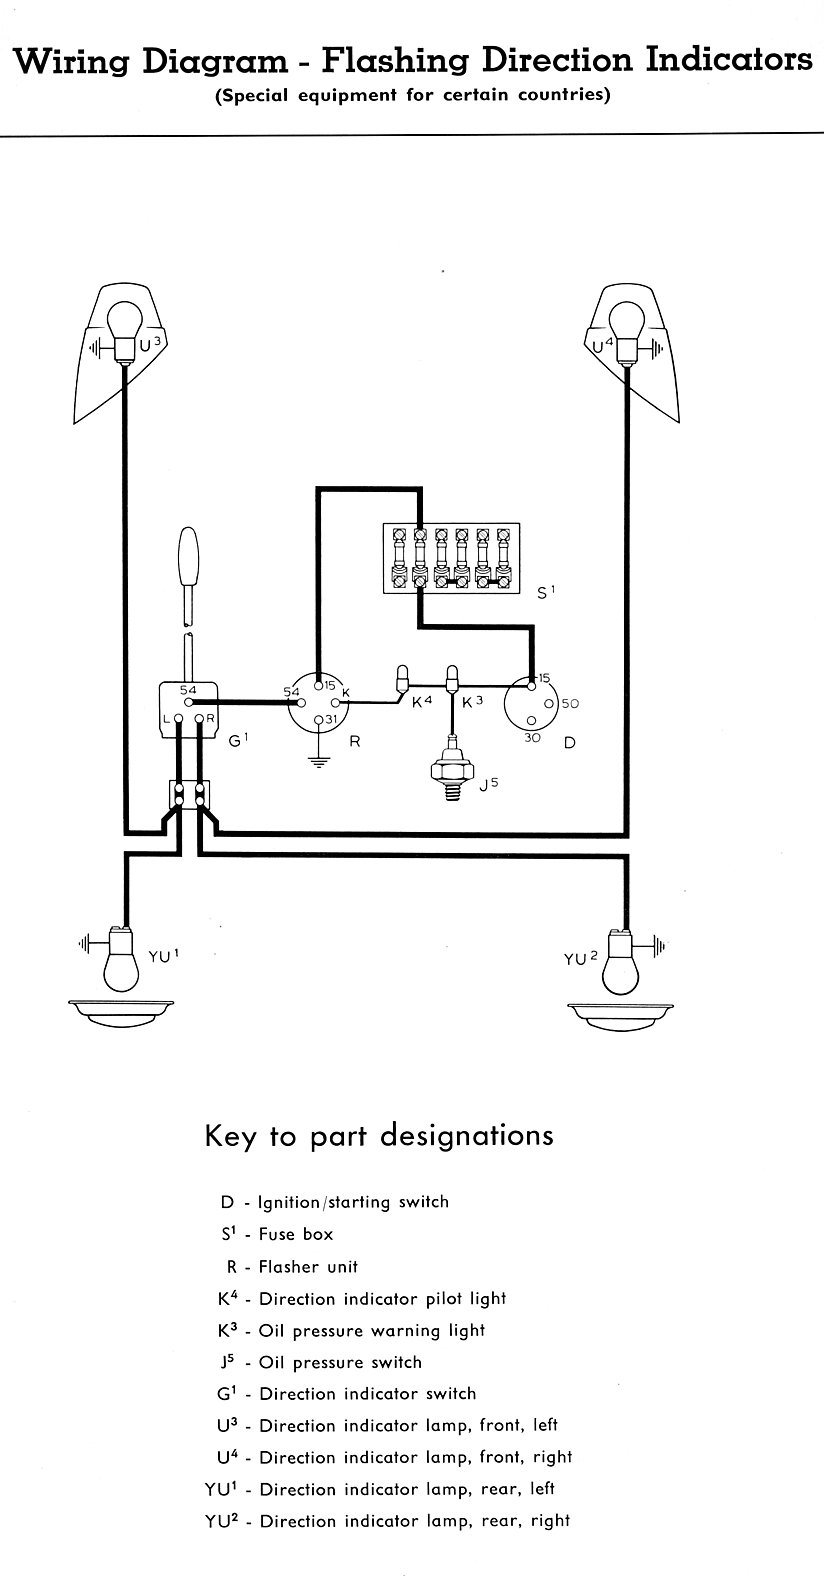 Turn Signal Diagram Nilzanet – Universal Turn Signal Wiring Diagram